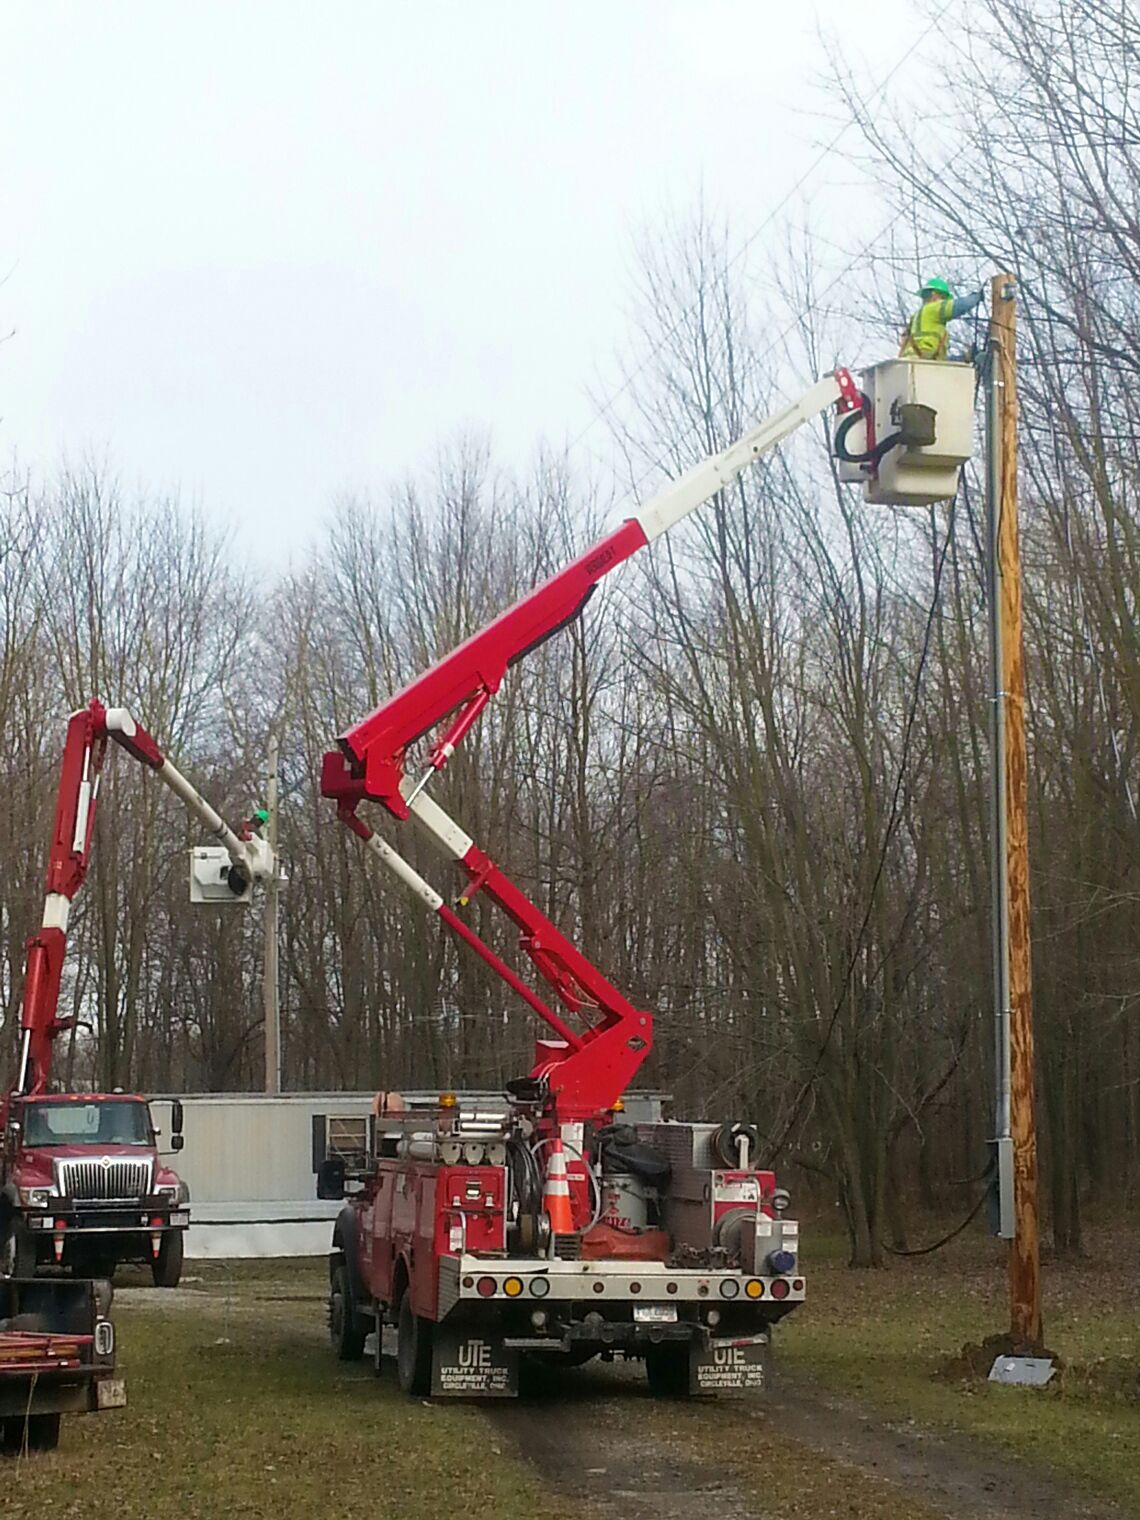 Firelands linemen keeping you connected with images